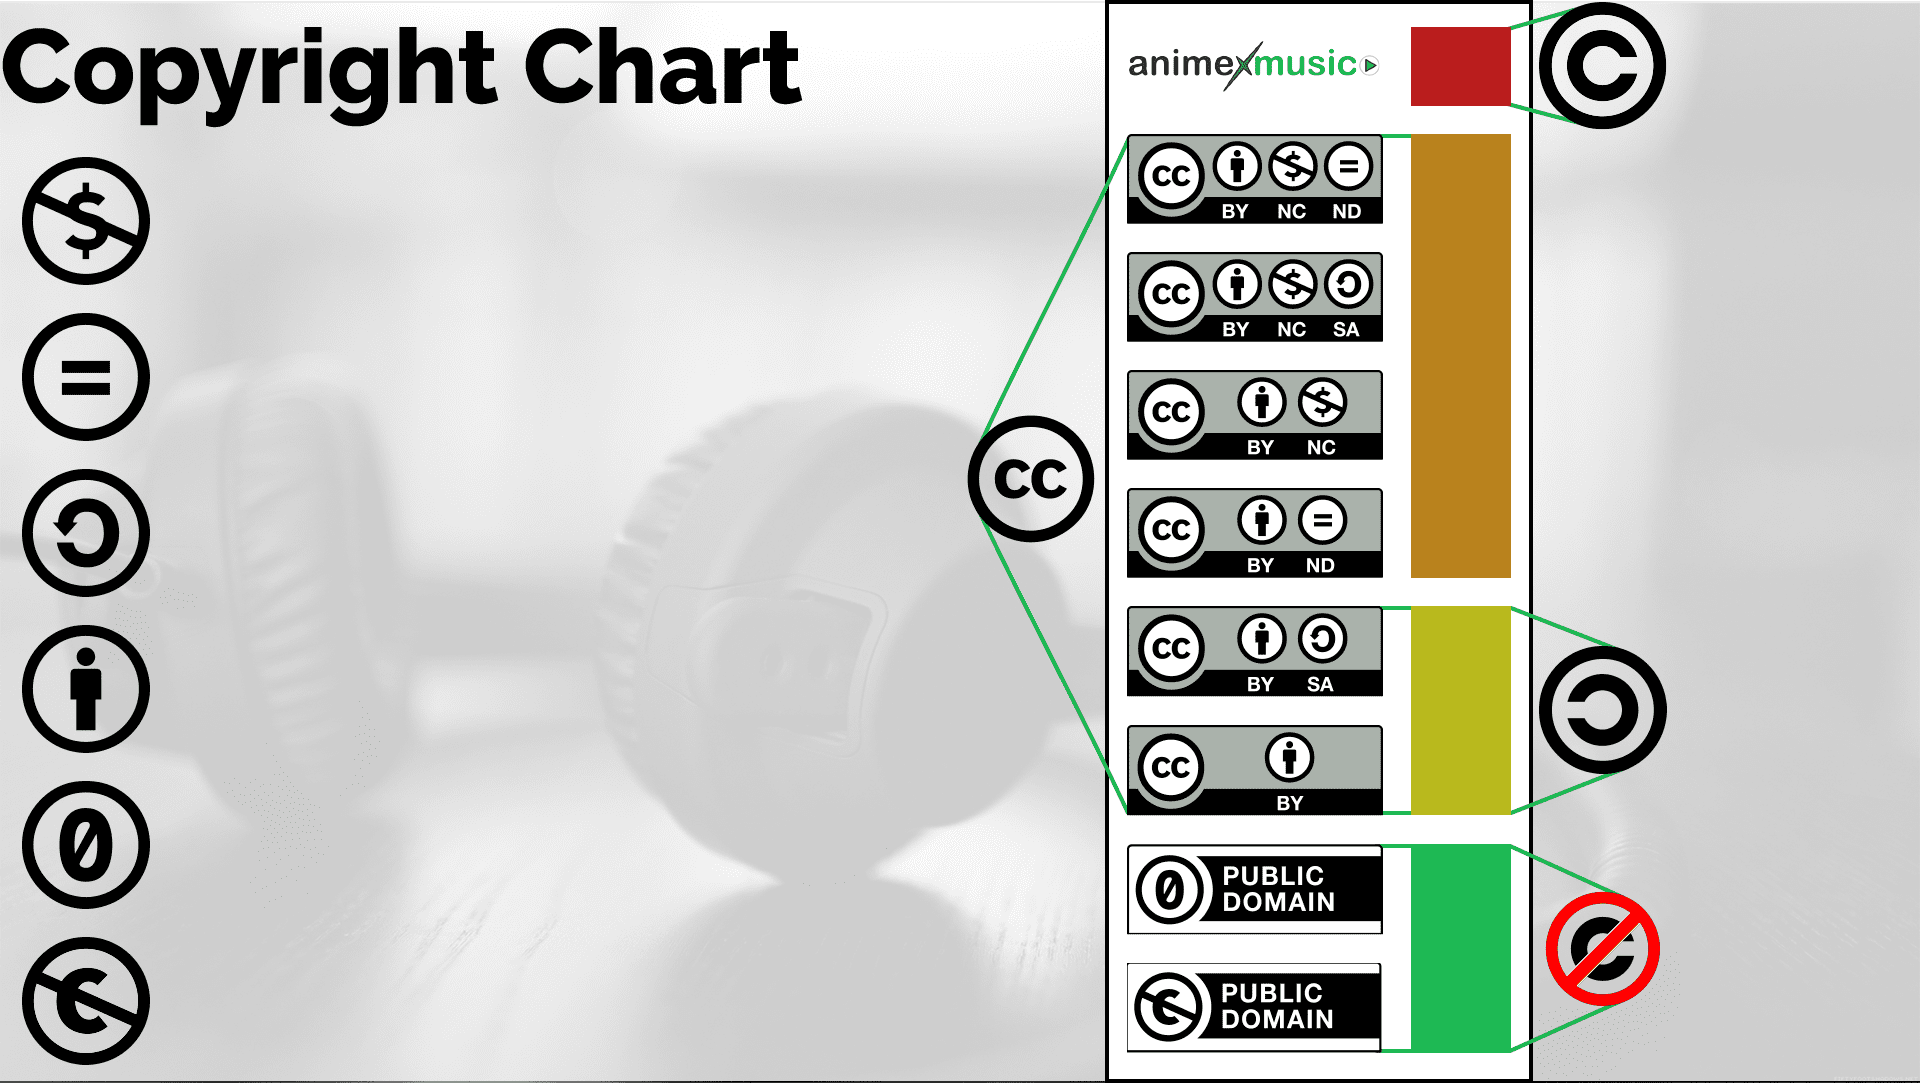 Copyright Chart Complete Unlabeled